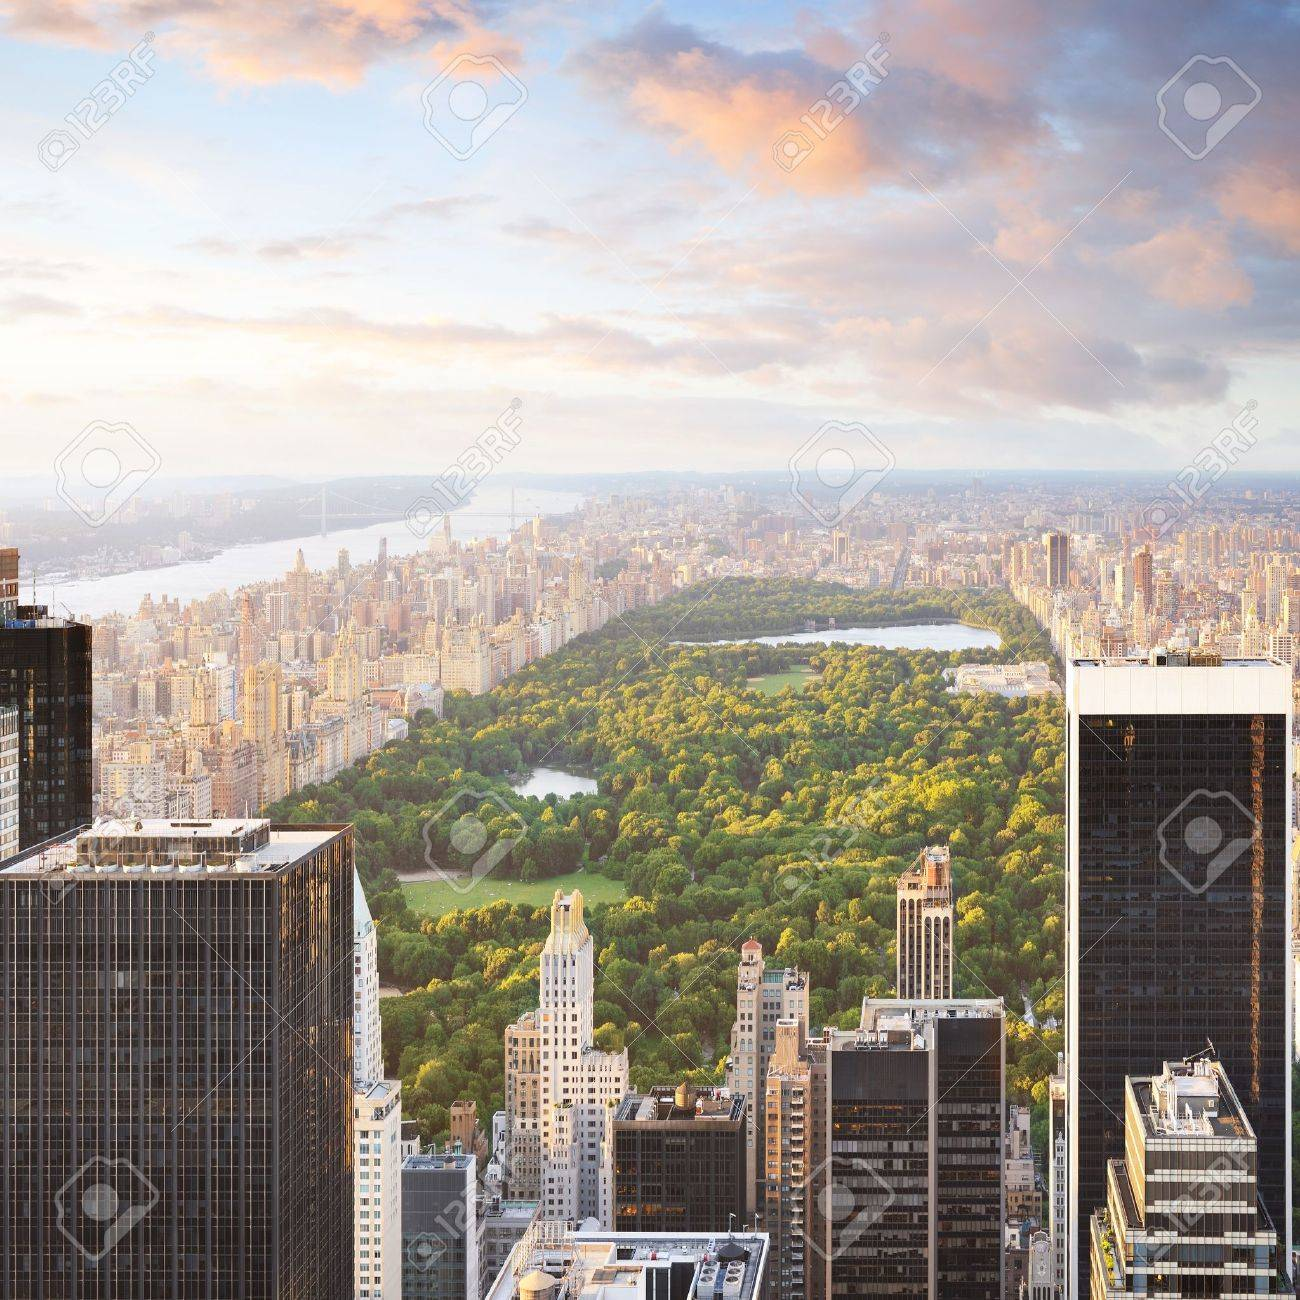 New york manhattan at sunset - central park view Stock Photo - 9316762